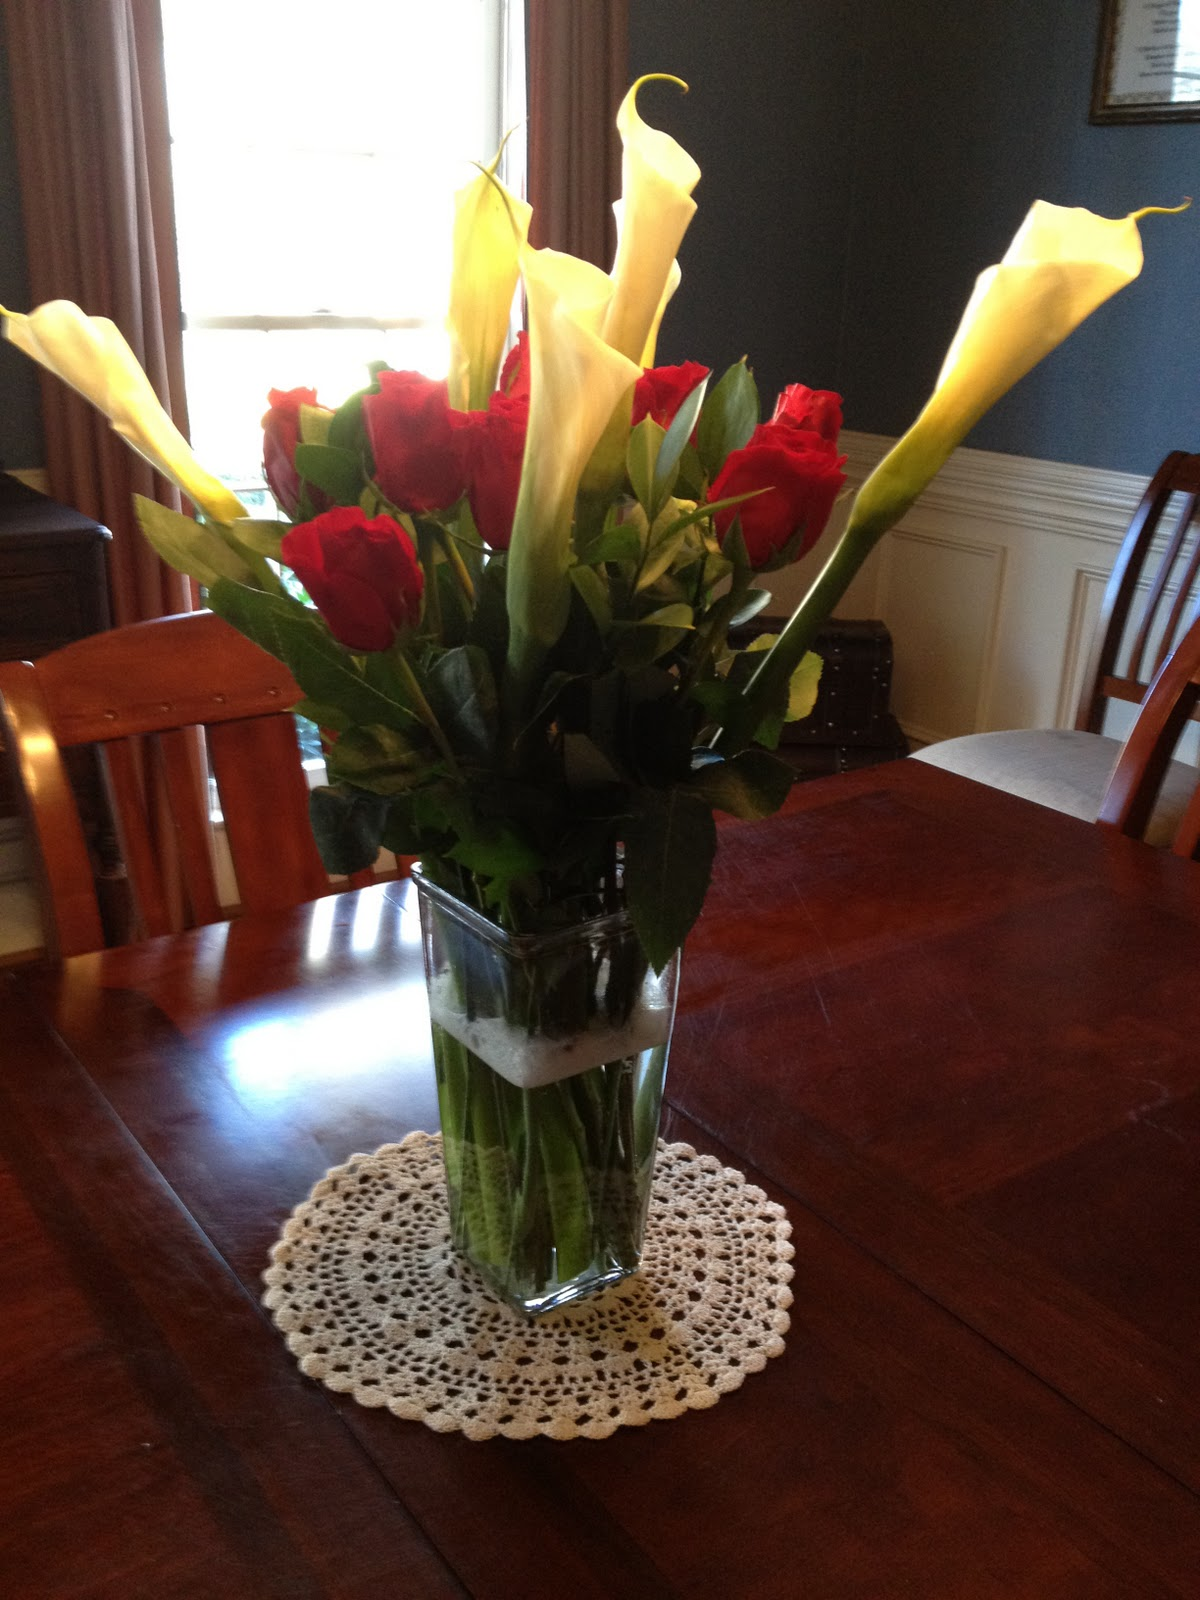 ... lilies are the official flower of six-year wedding anniversaries